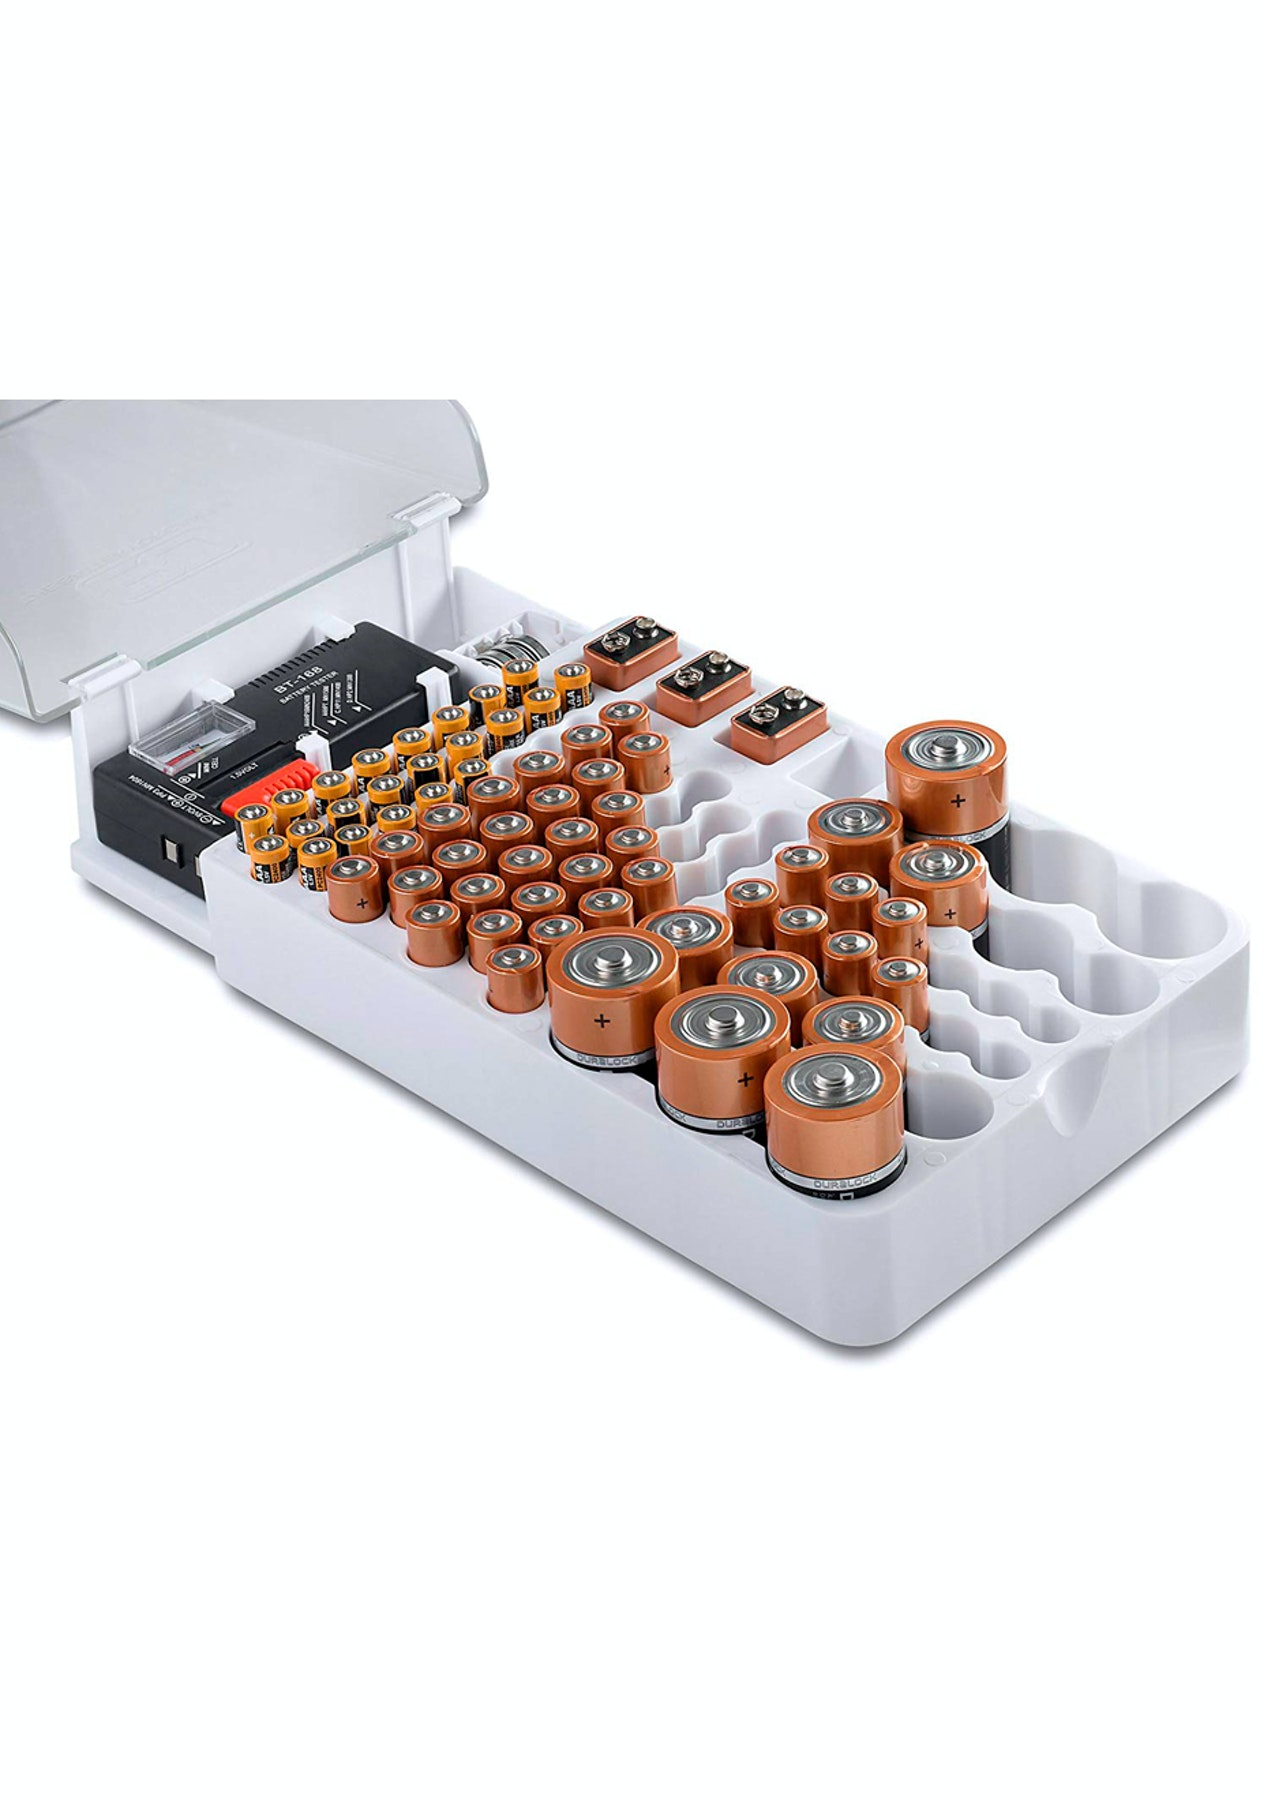 best loved 4146f b0a07 93pc Battery Organizer Storage Case with Tester